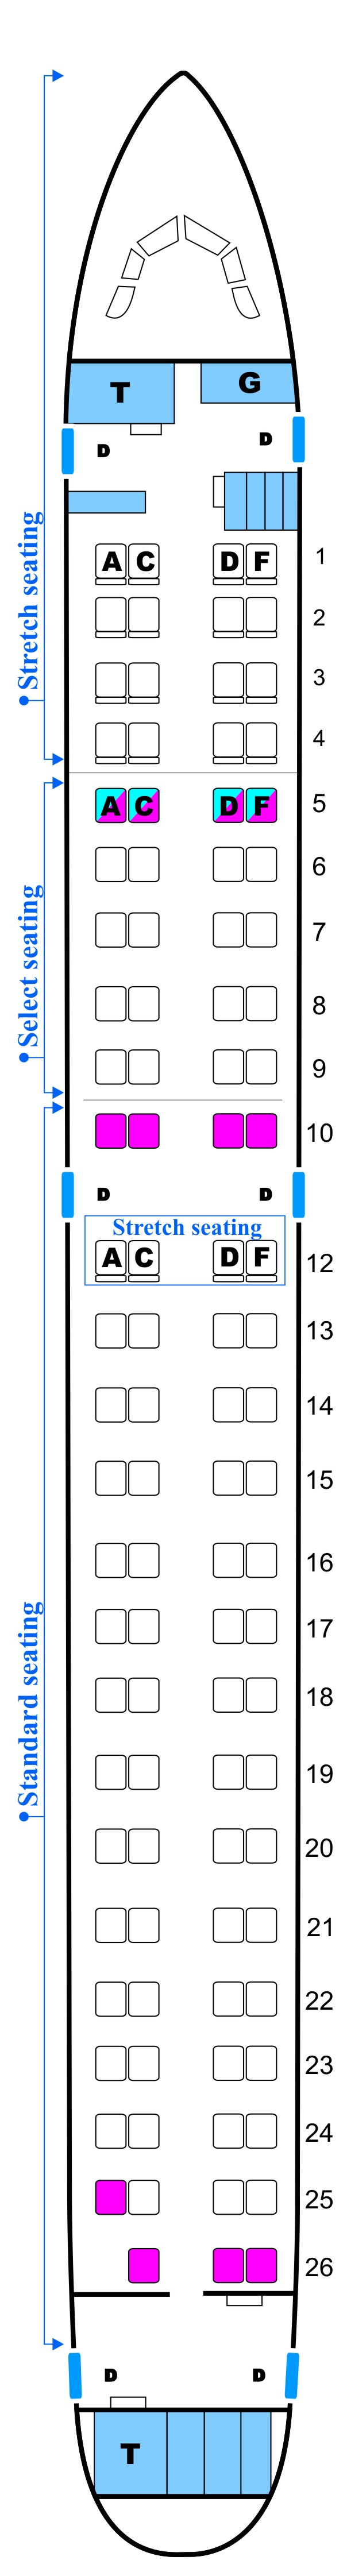 Seat map for Midwest Airlines Embraer E190 Config. A